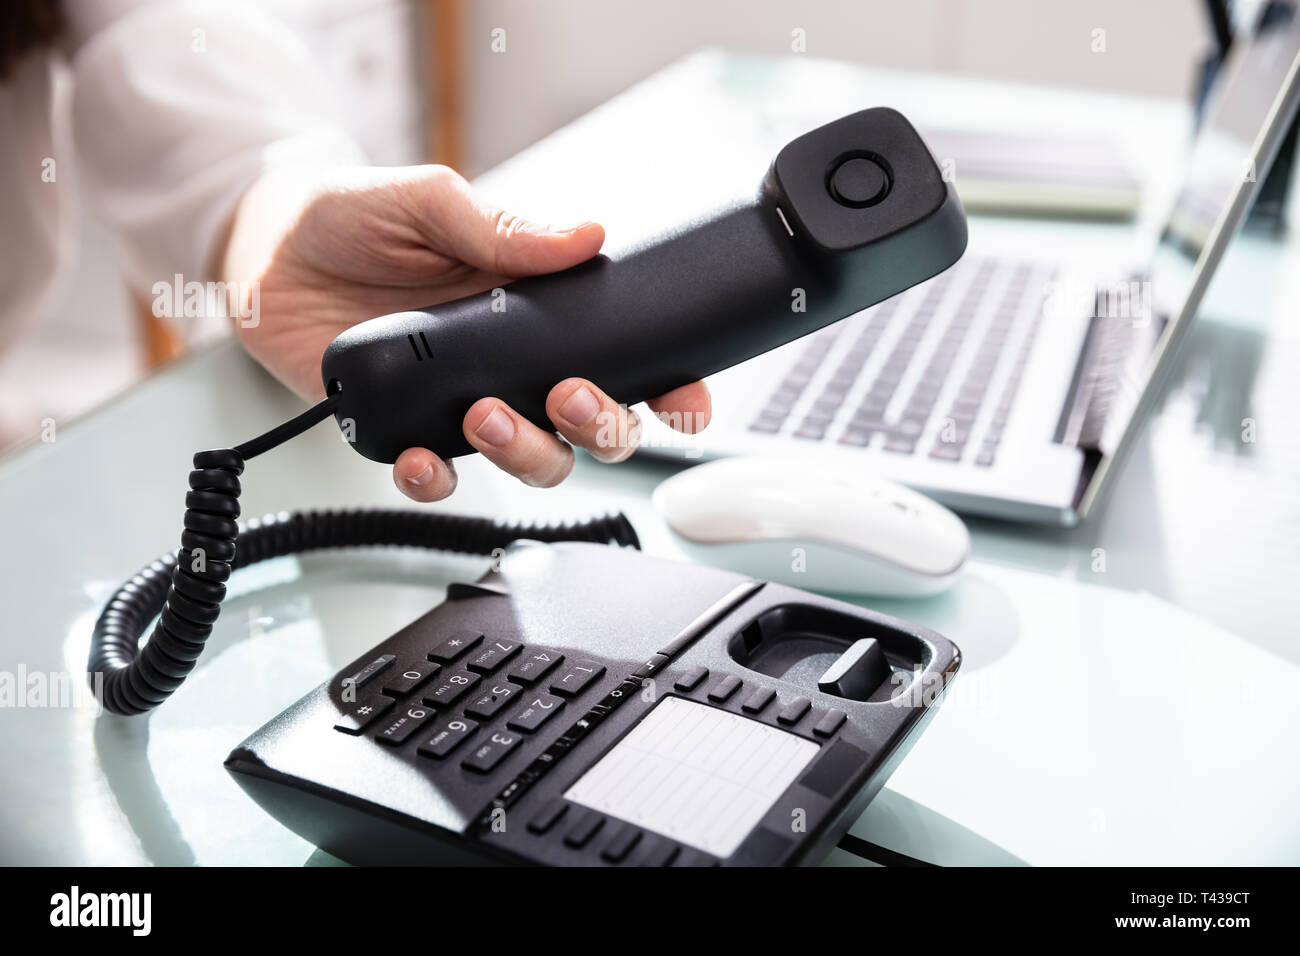 Close-up Of A Businesswoman's Hand Dialing Telephone Number To Make Phone Call In Office - Stock Image